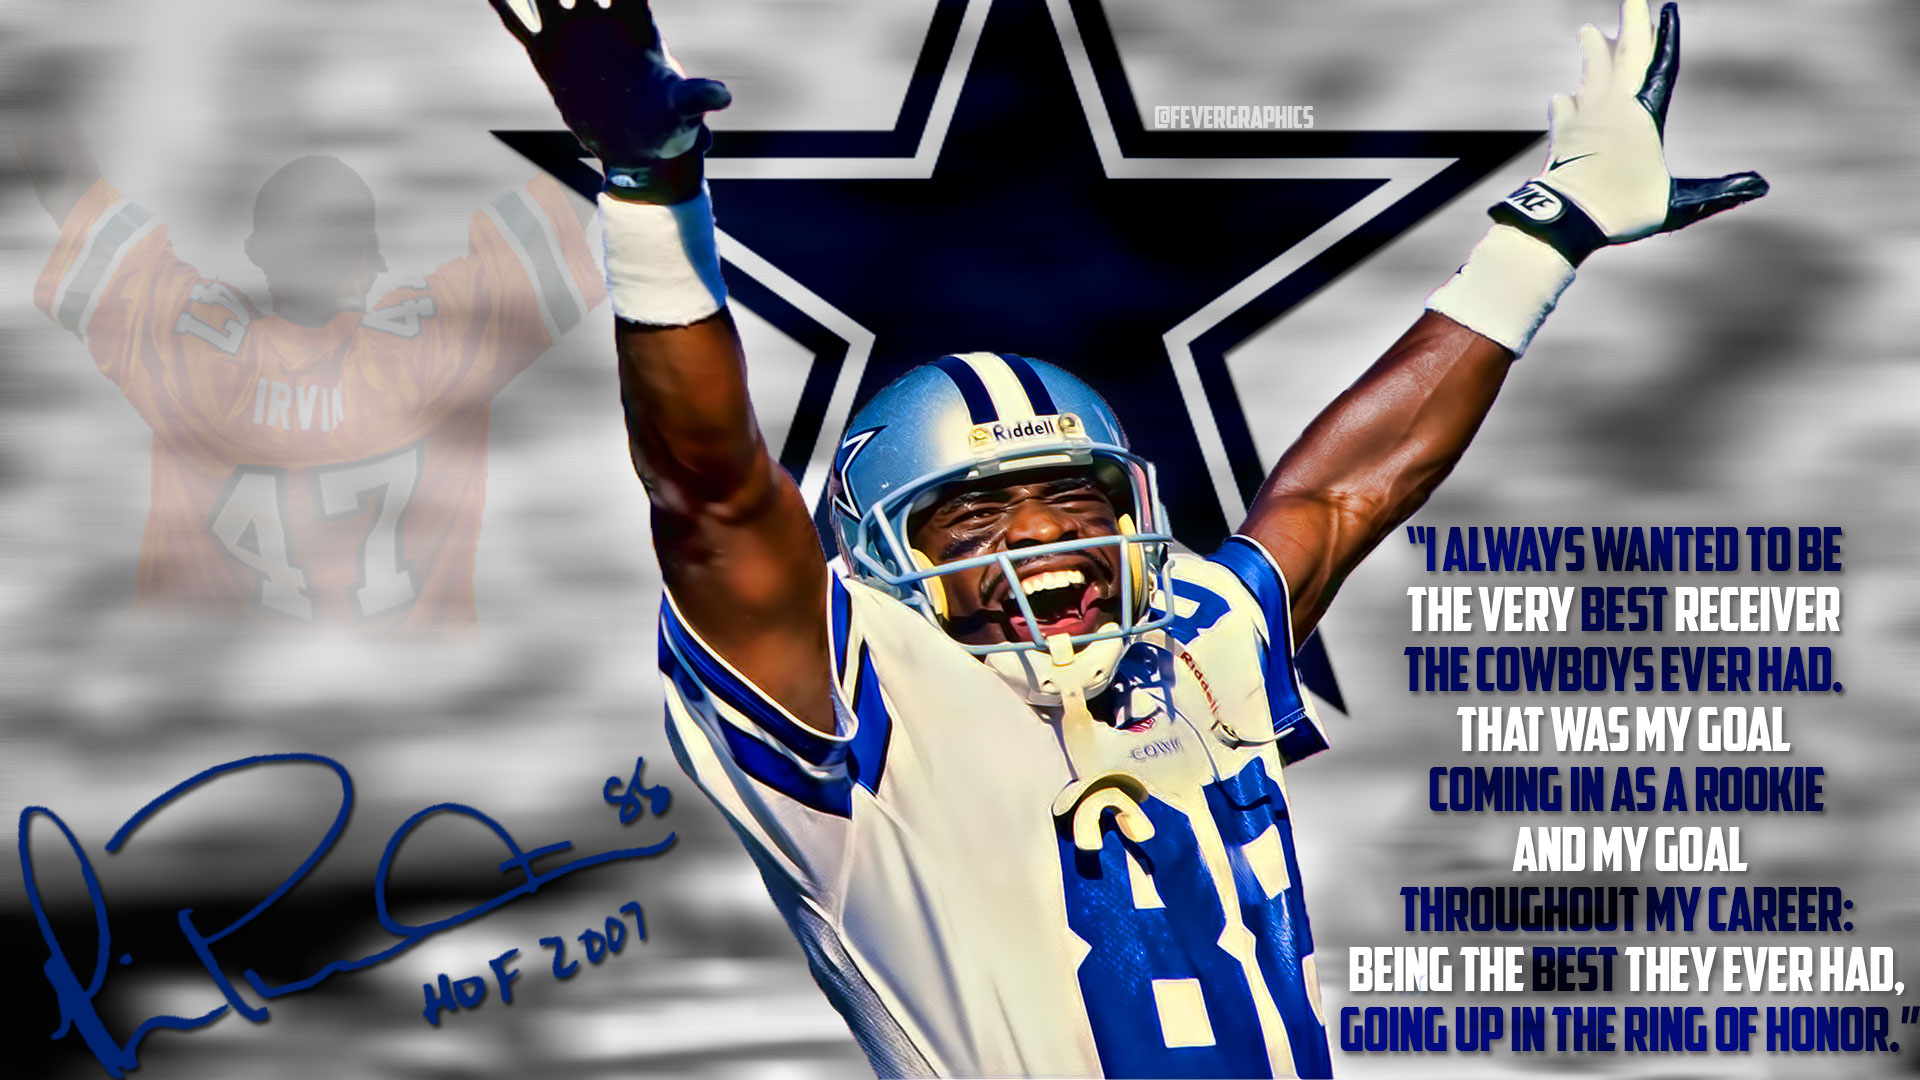 Michael Irvin Wallpaper